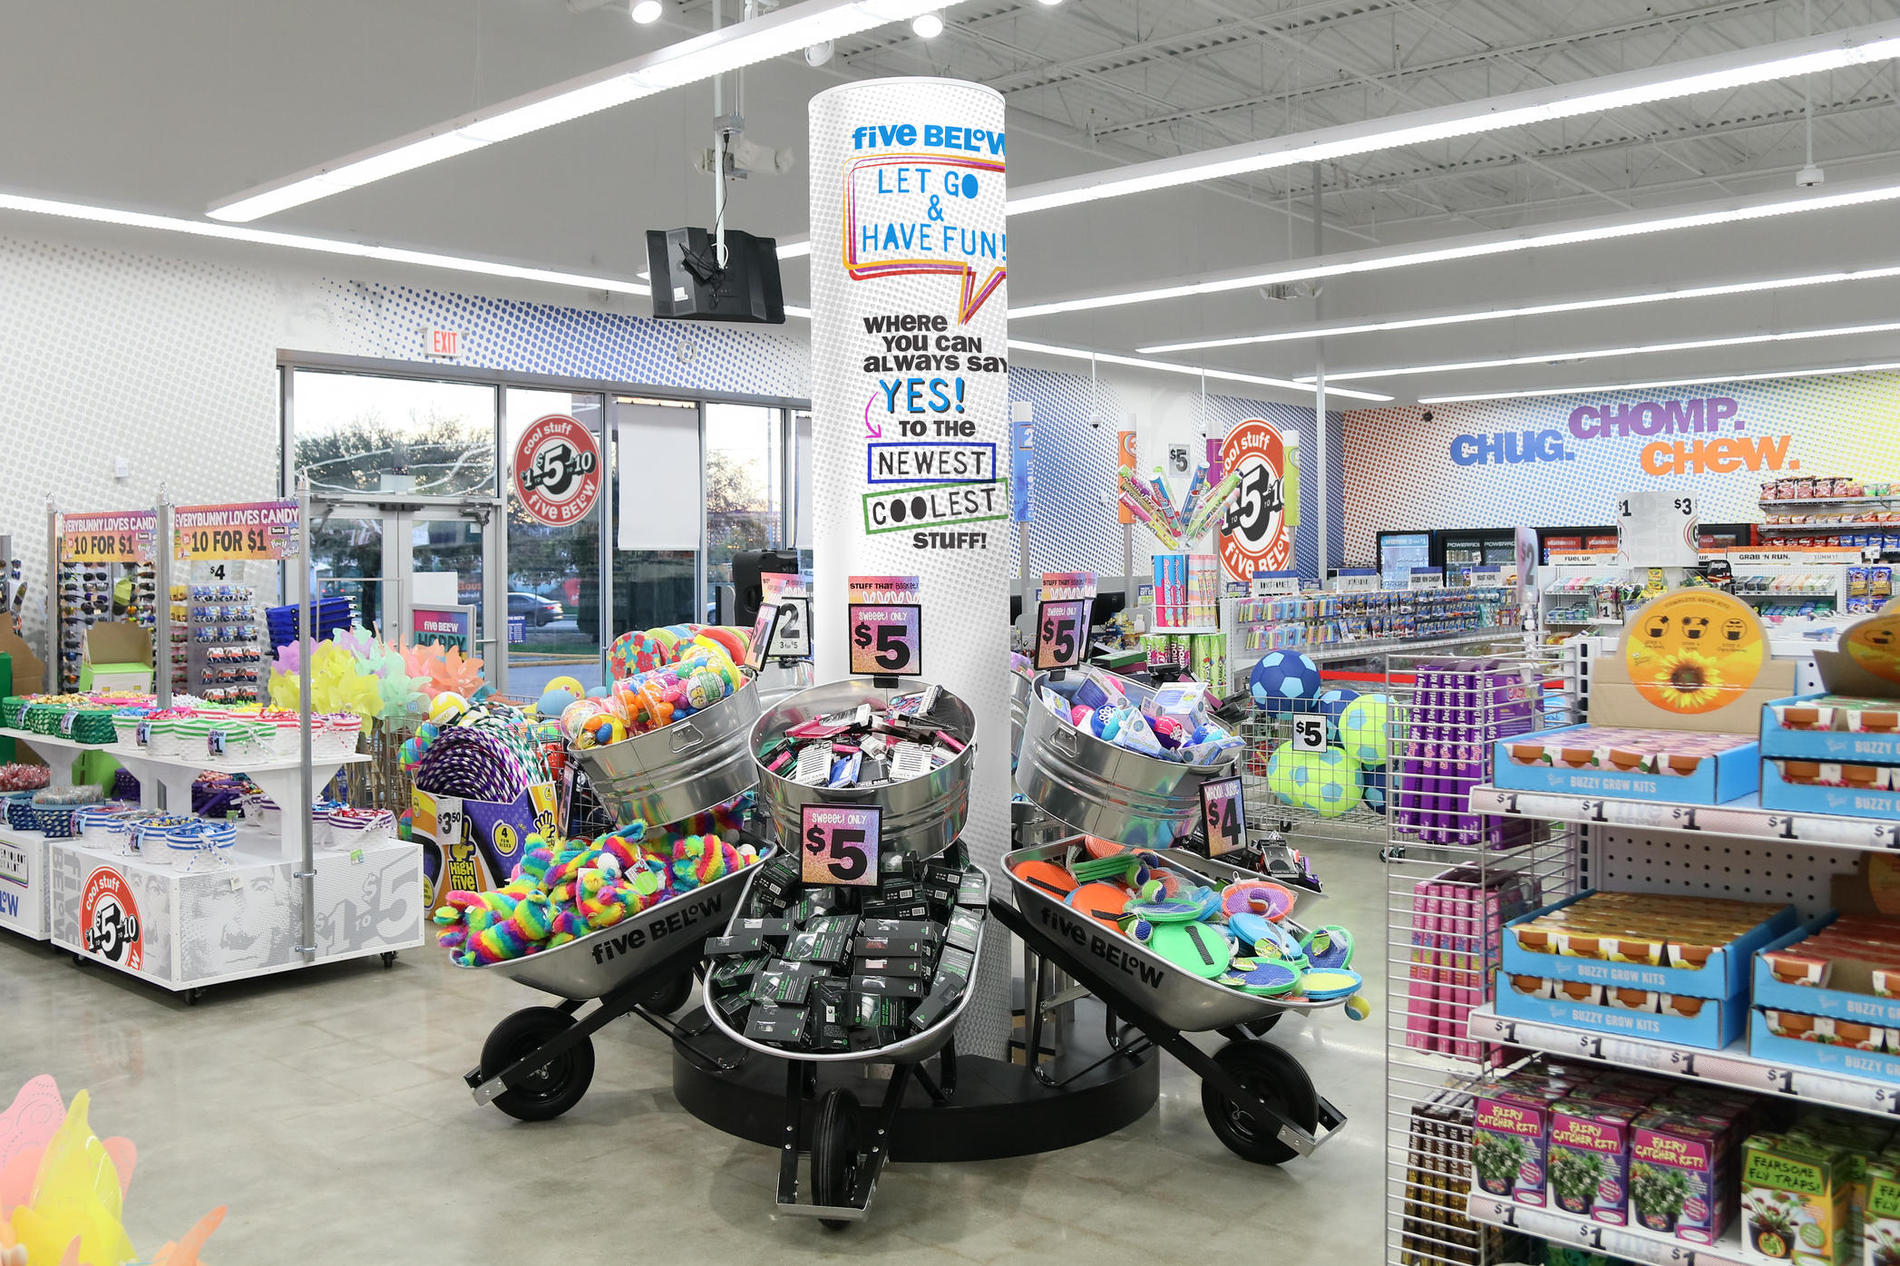 Five Below Miami Gardens Promenade Novelty Items Games And Toys